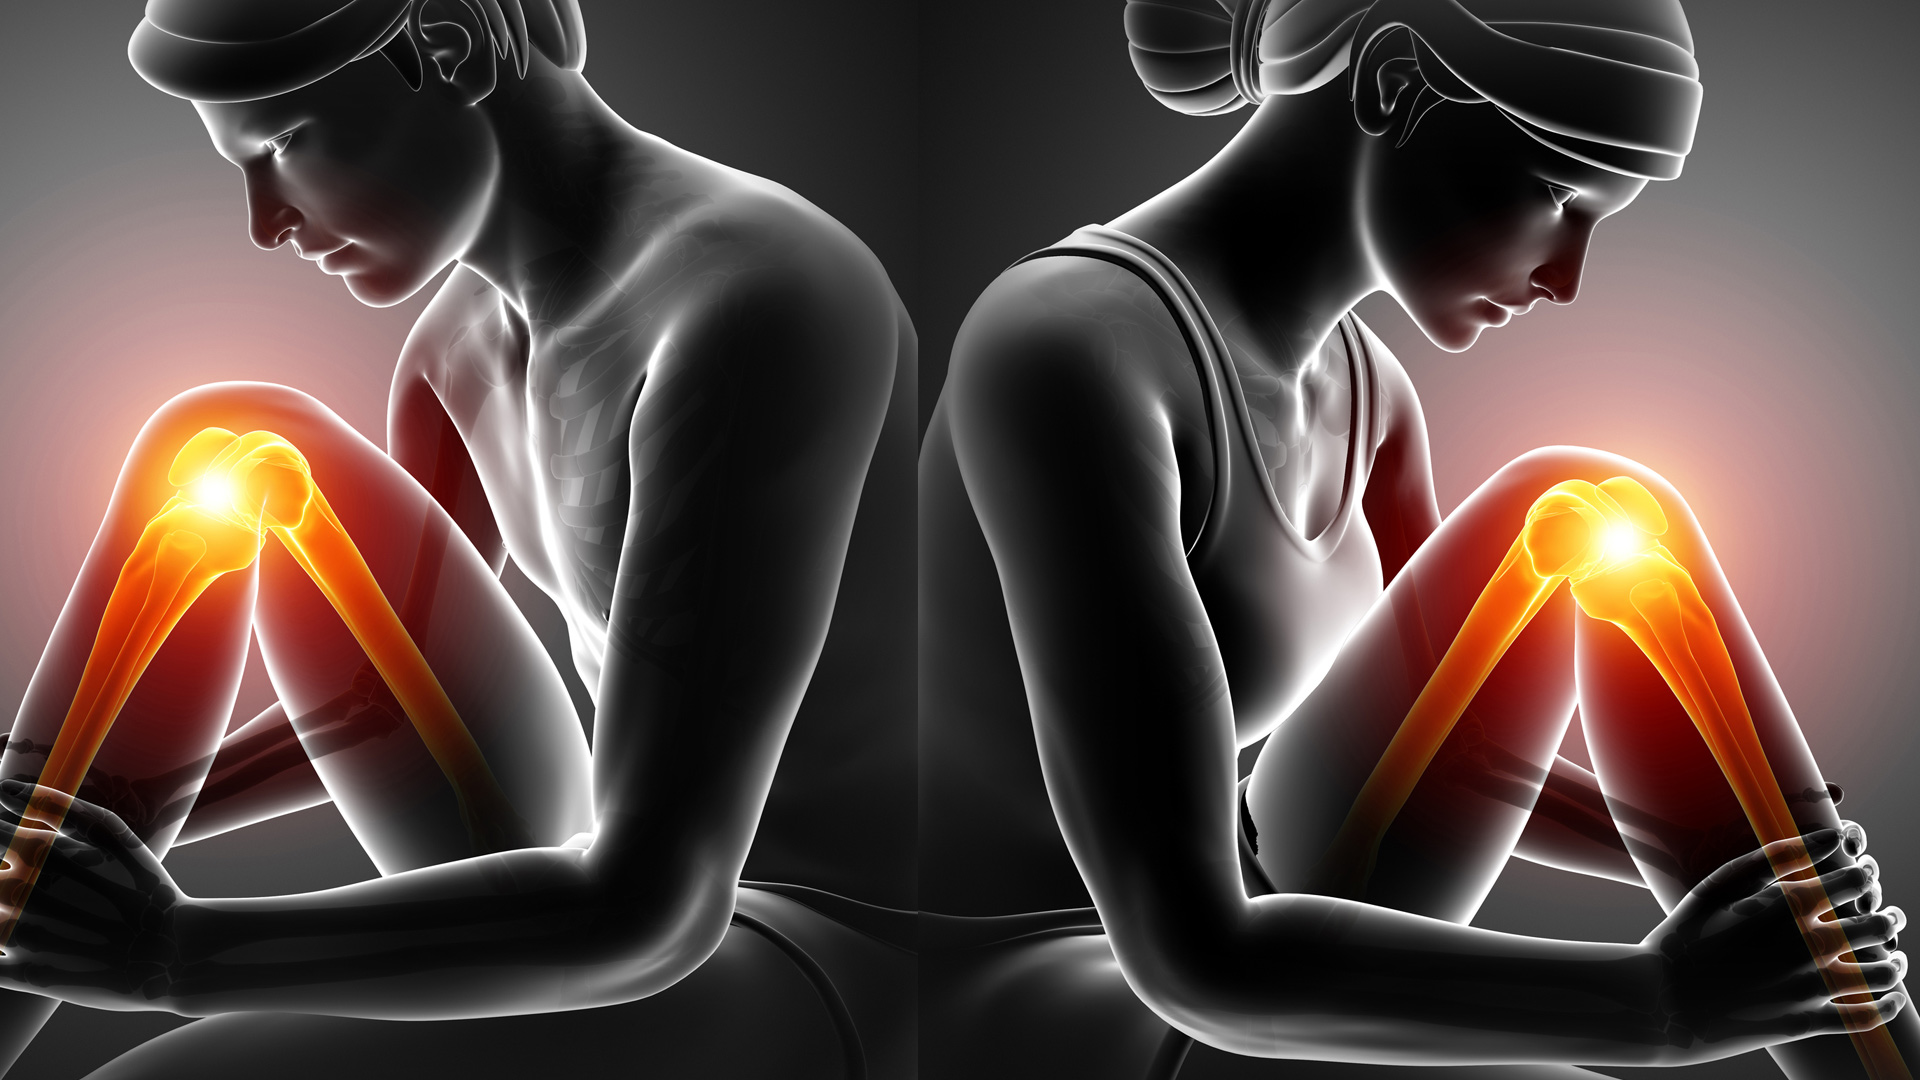 A graphic of a man and woman next to each other with pain in the legs highlighted.